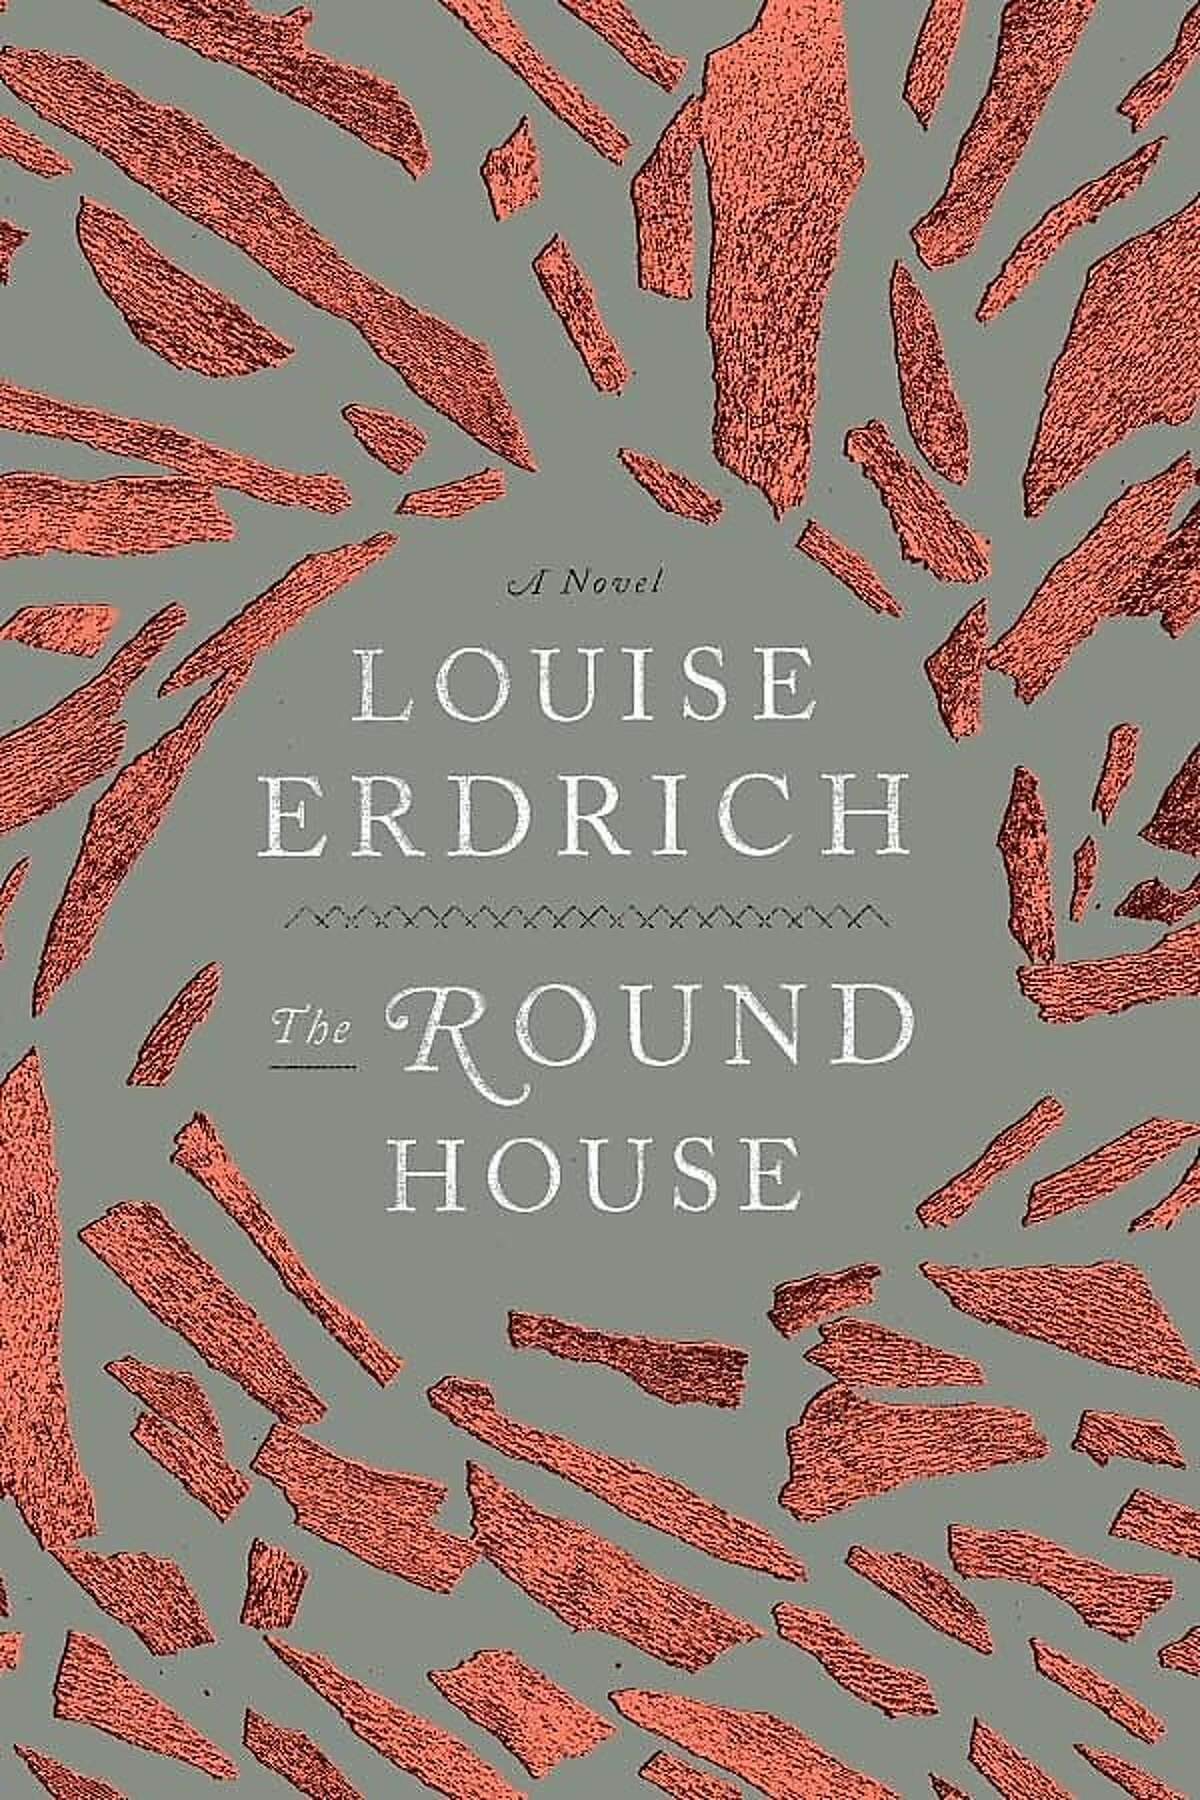 The Round House, by Louise Erdrich